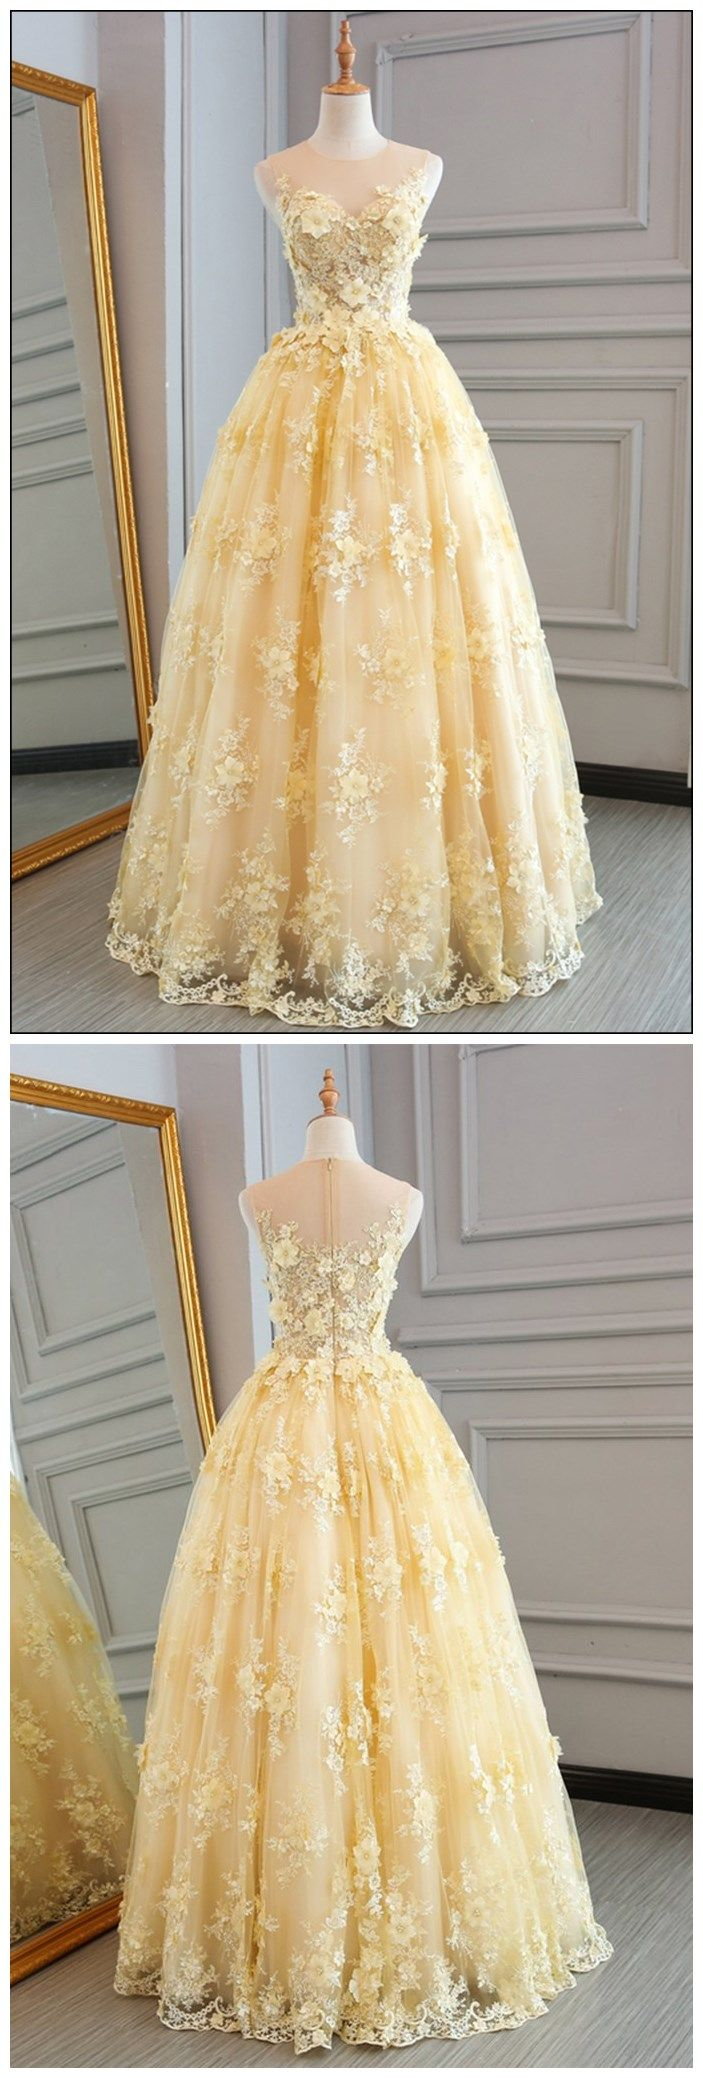 0545520e2c Long Prom Dresses Scoop A-line Floor-length Lace Sexy Yellow Prom Dress